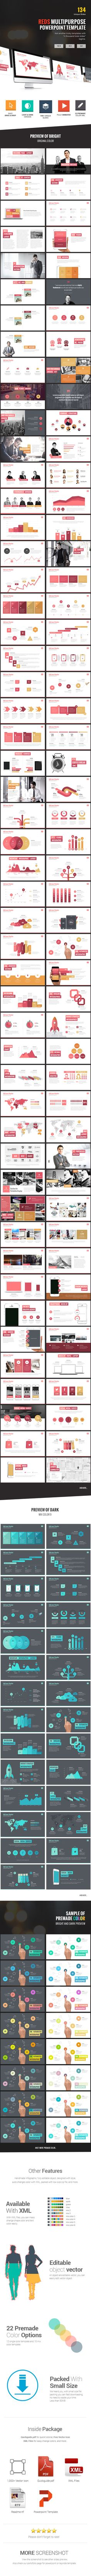 Red's  Creative Multipurpose Powerpoint Template — Powerpoint PPTX #agency #marketing • Available here → https://graphicriver.net/item/reds-creative-multipurpose-powerpoint-template/13825795?ref=pxcr